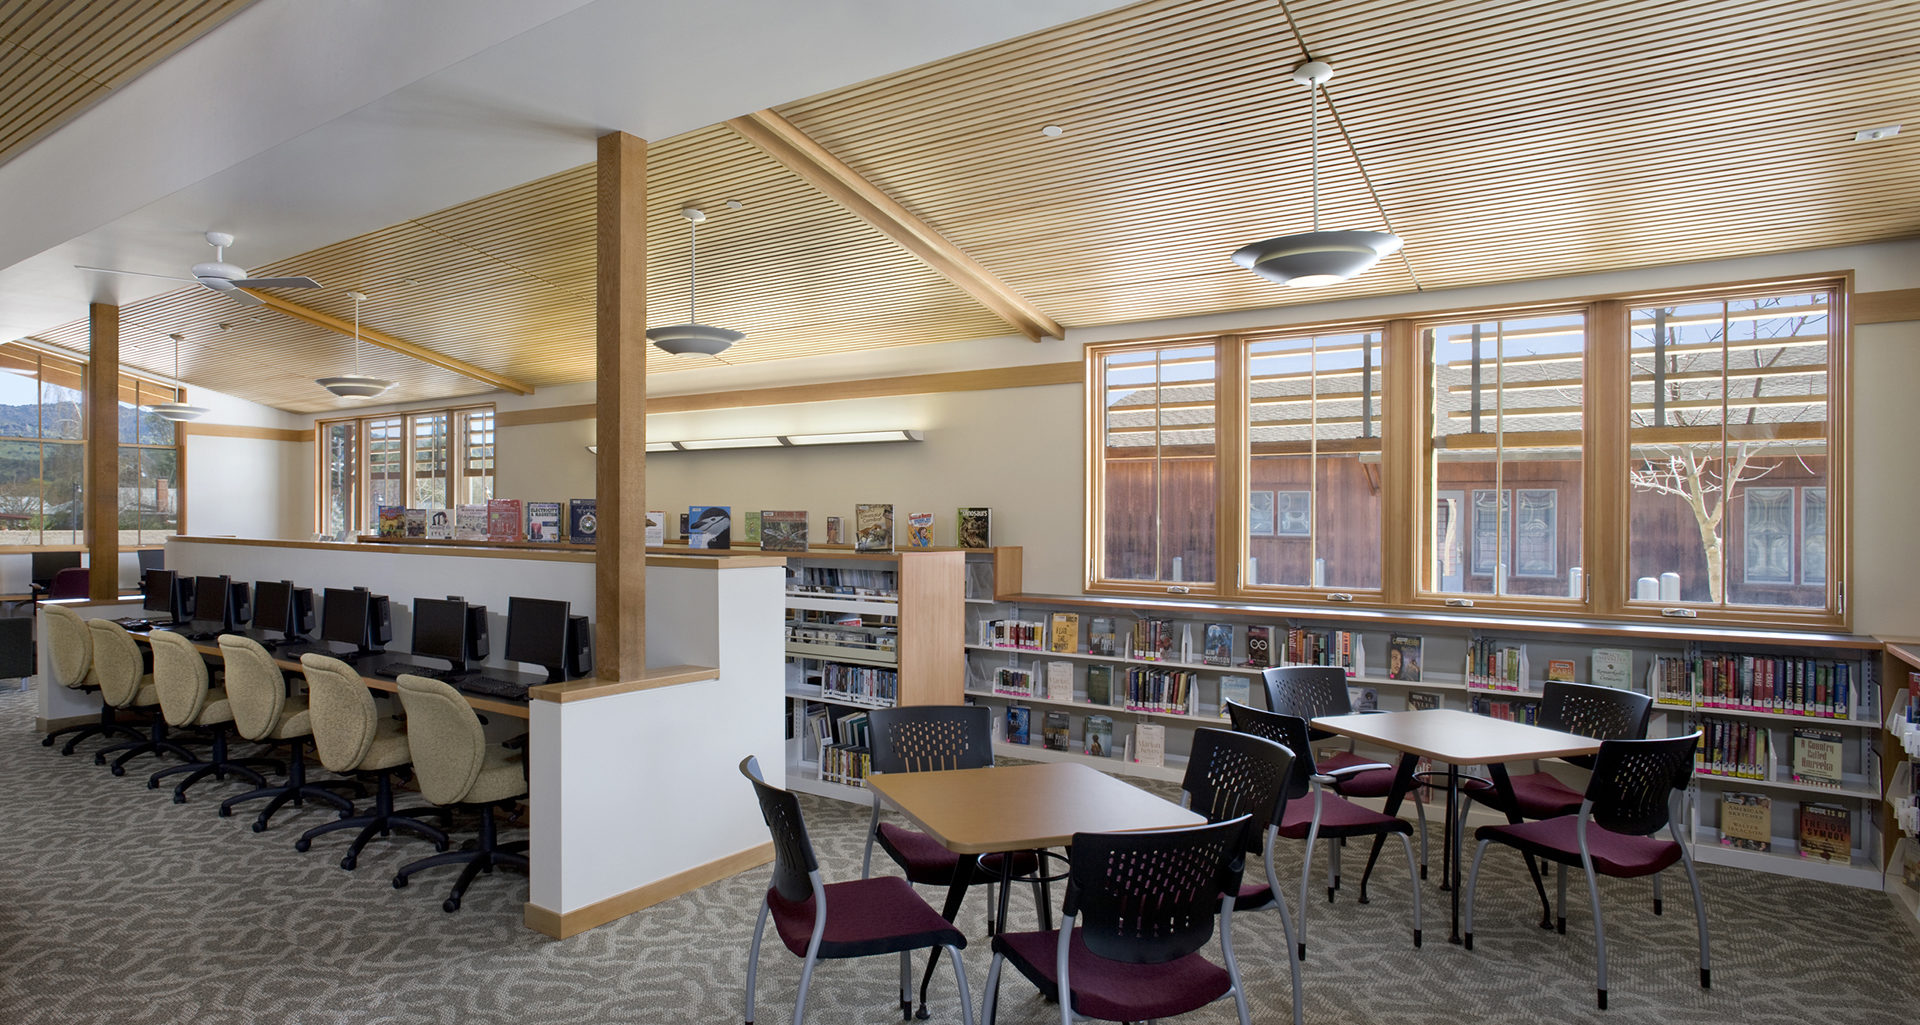 Yountville Town Center & Library   Photos by David Wakely